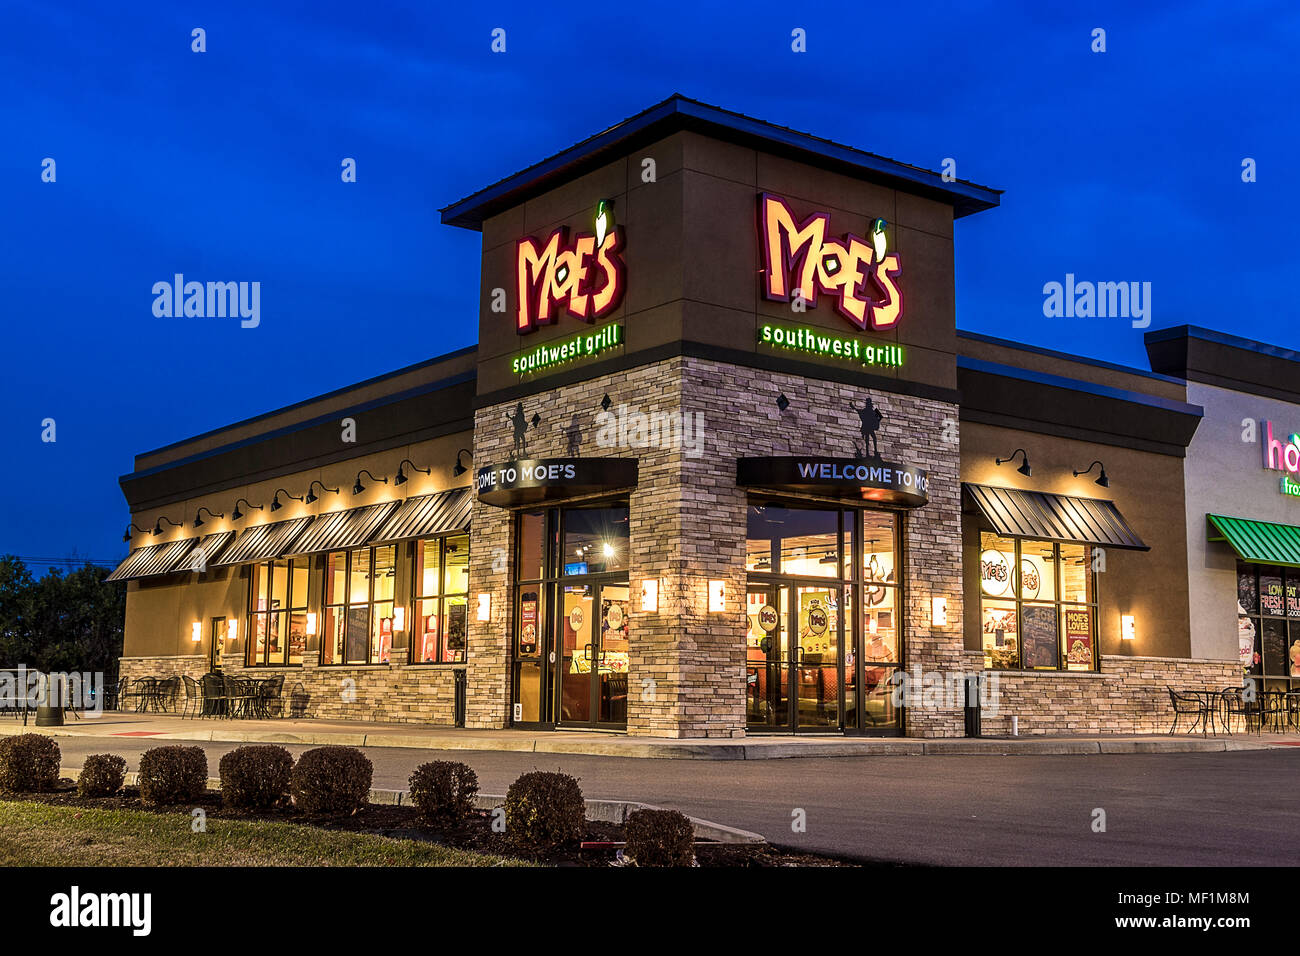 Utica Ny December 02 2017 A Moes Southwest Grill Restaurant